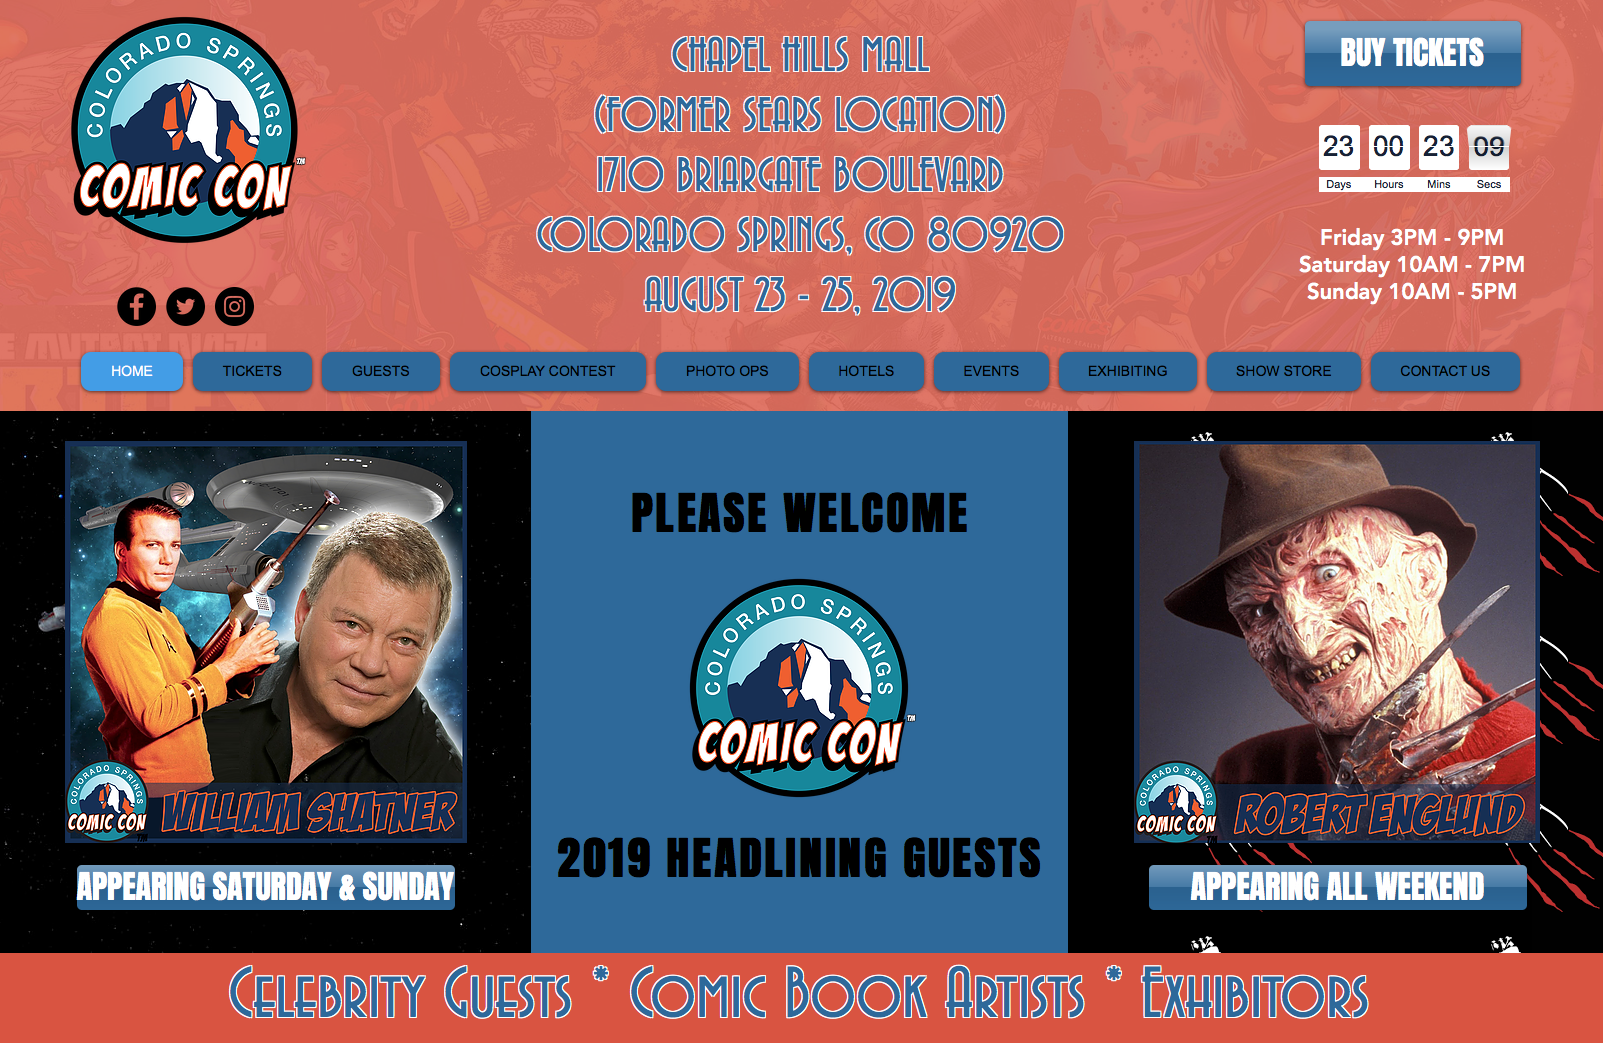 Colorado Springs Comic Con at the former Sears location in the Chapel Hills Mall at 1710 Briargate blvd Colorado Springs, CO 80920. August 23-25. Headlining guests include William Shatner of Star Trek and Robert England of Nightmare on Elm Street!  * Celebrity Guests * Comic Book Artists * Exhibitors*